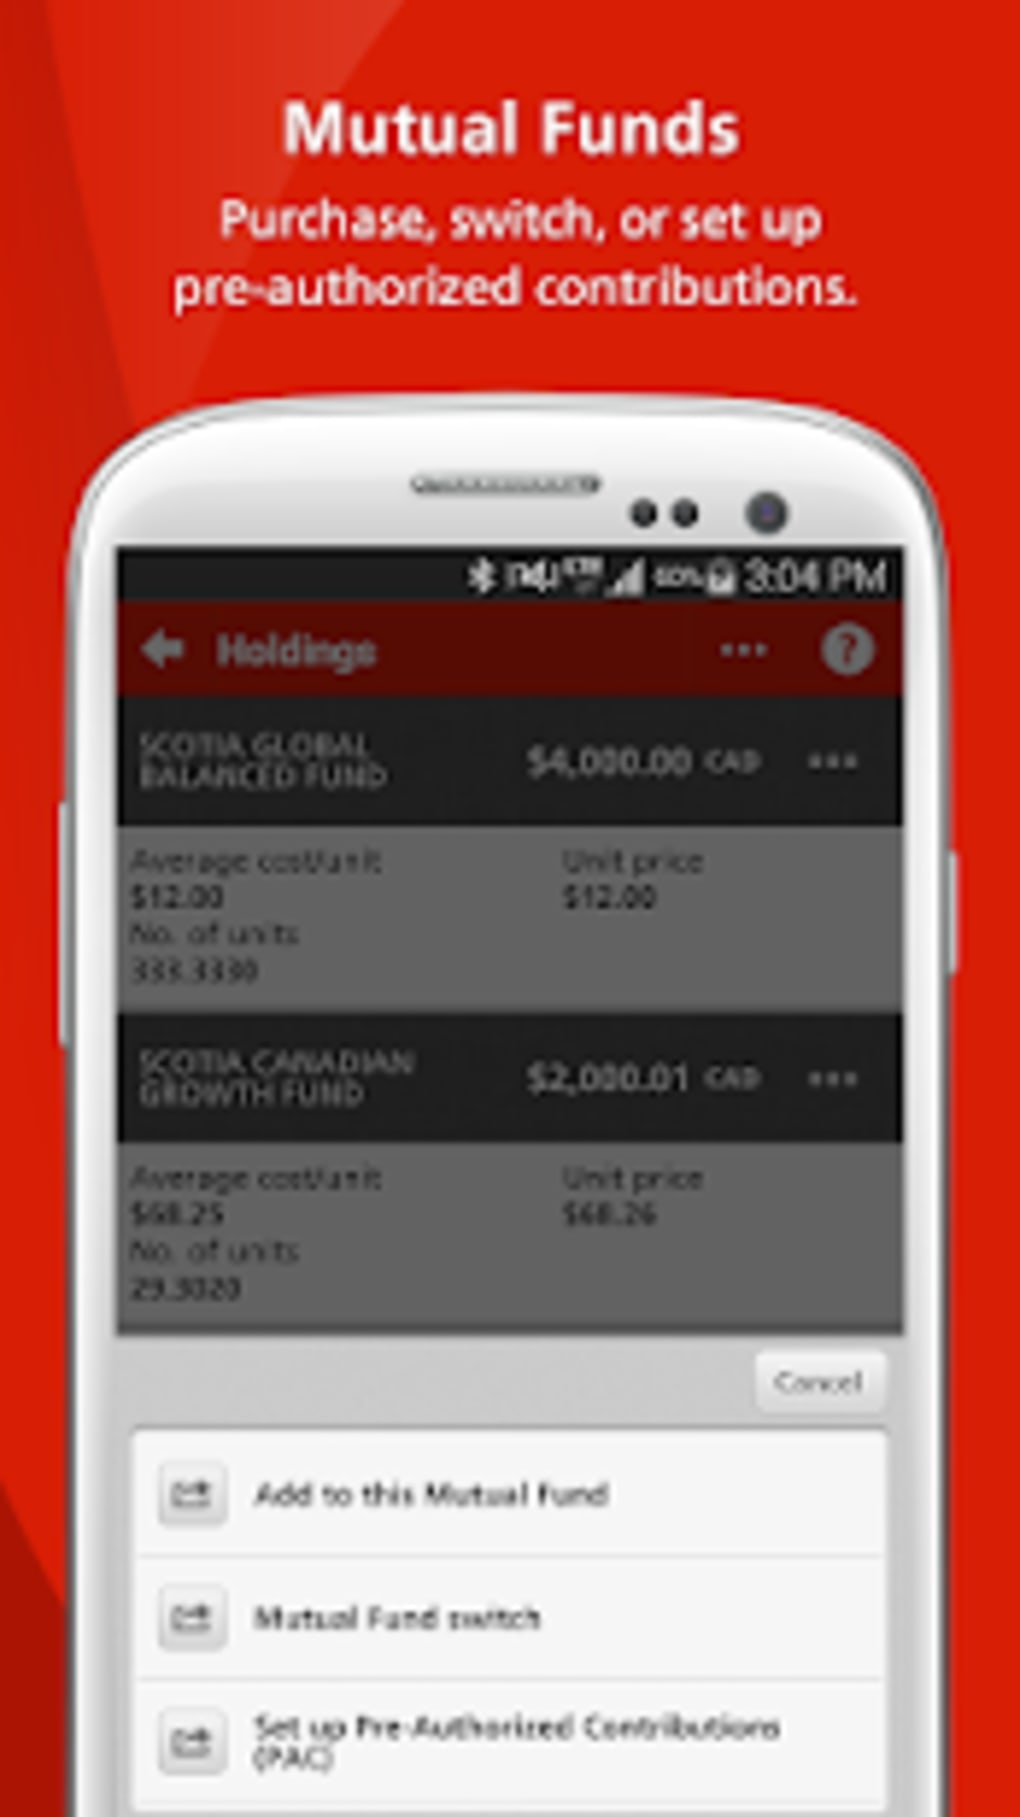 Scotiabank Mobile Banking for Android - Download